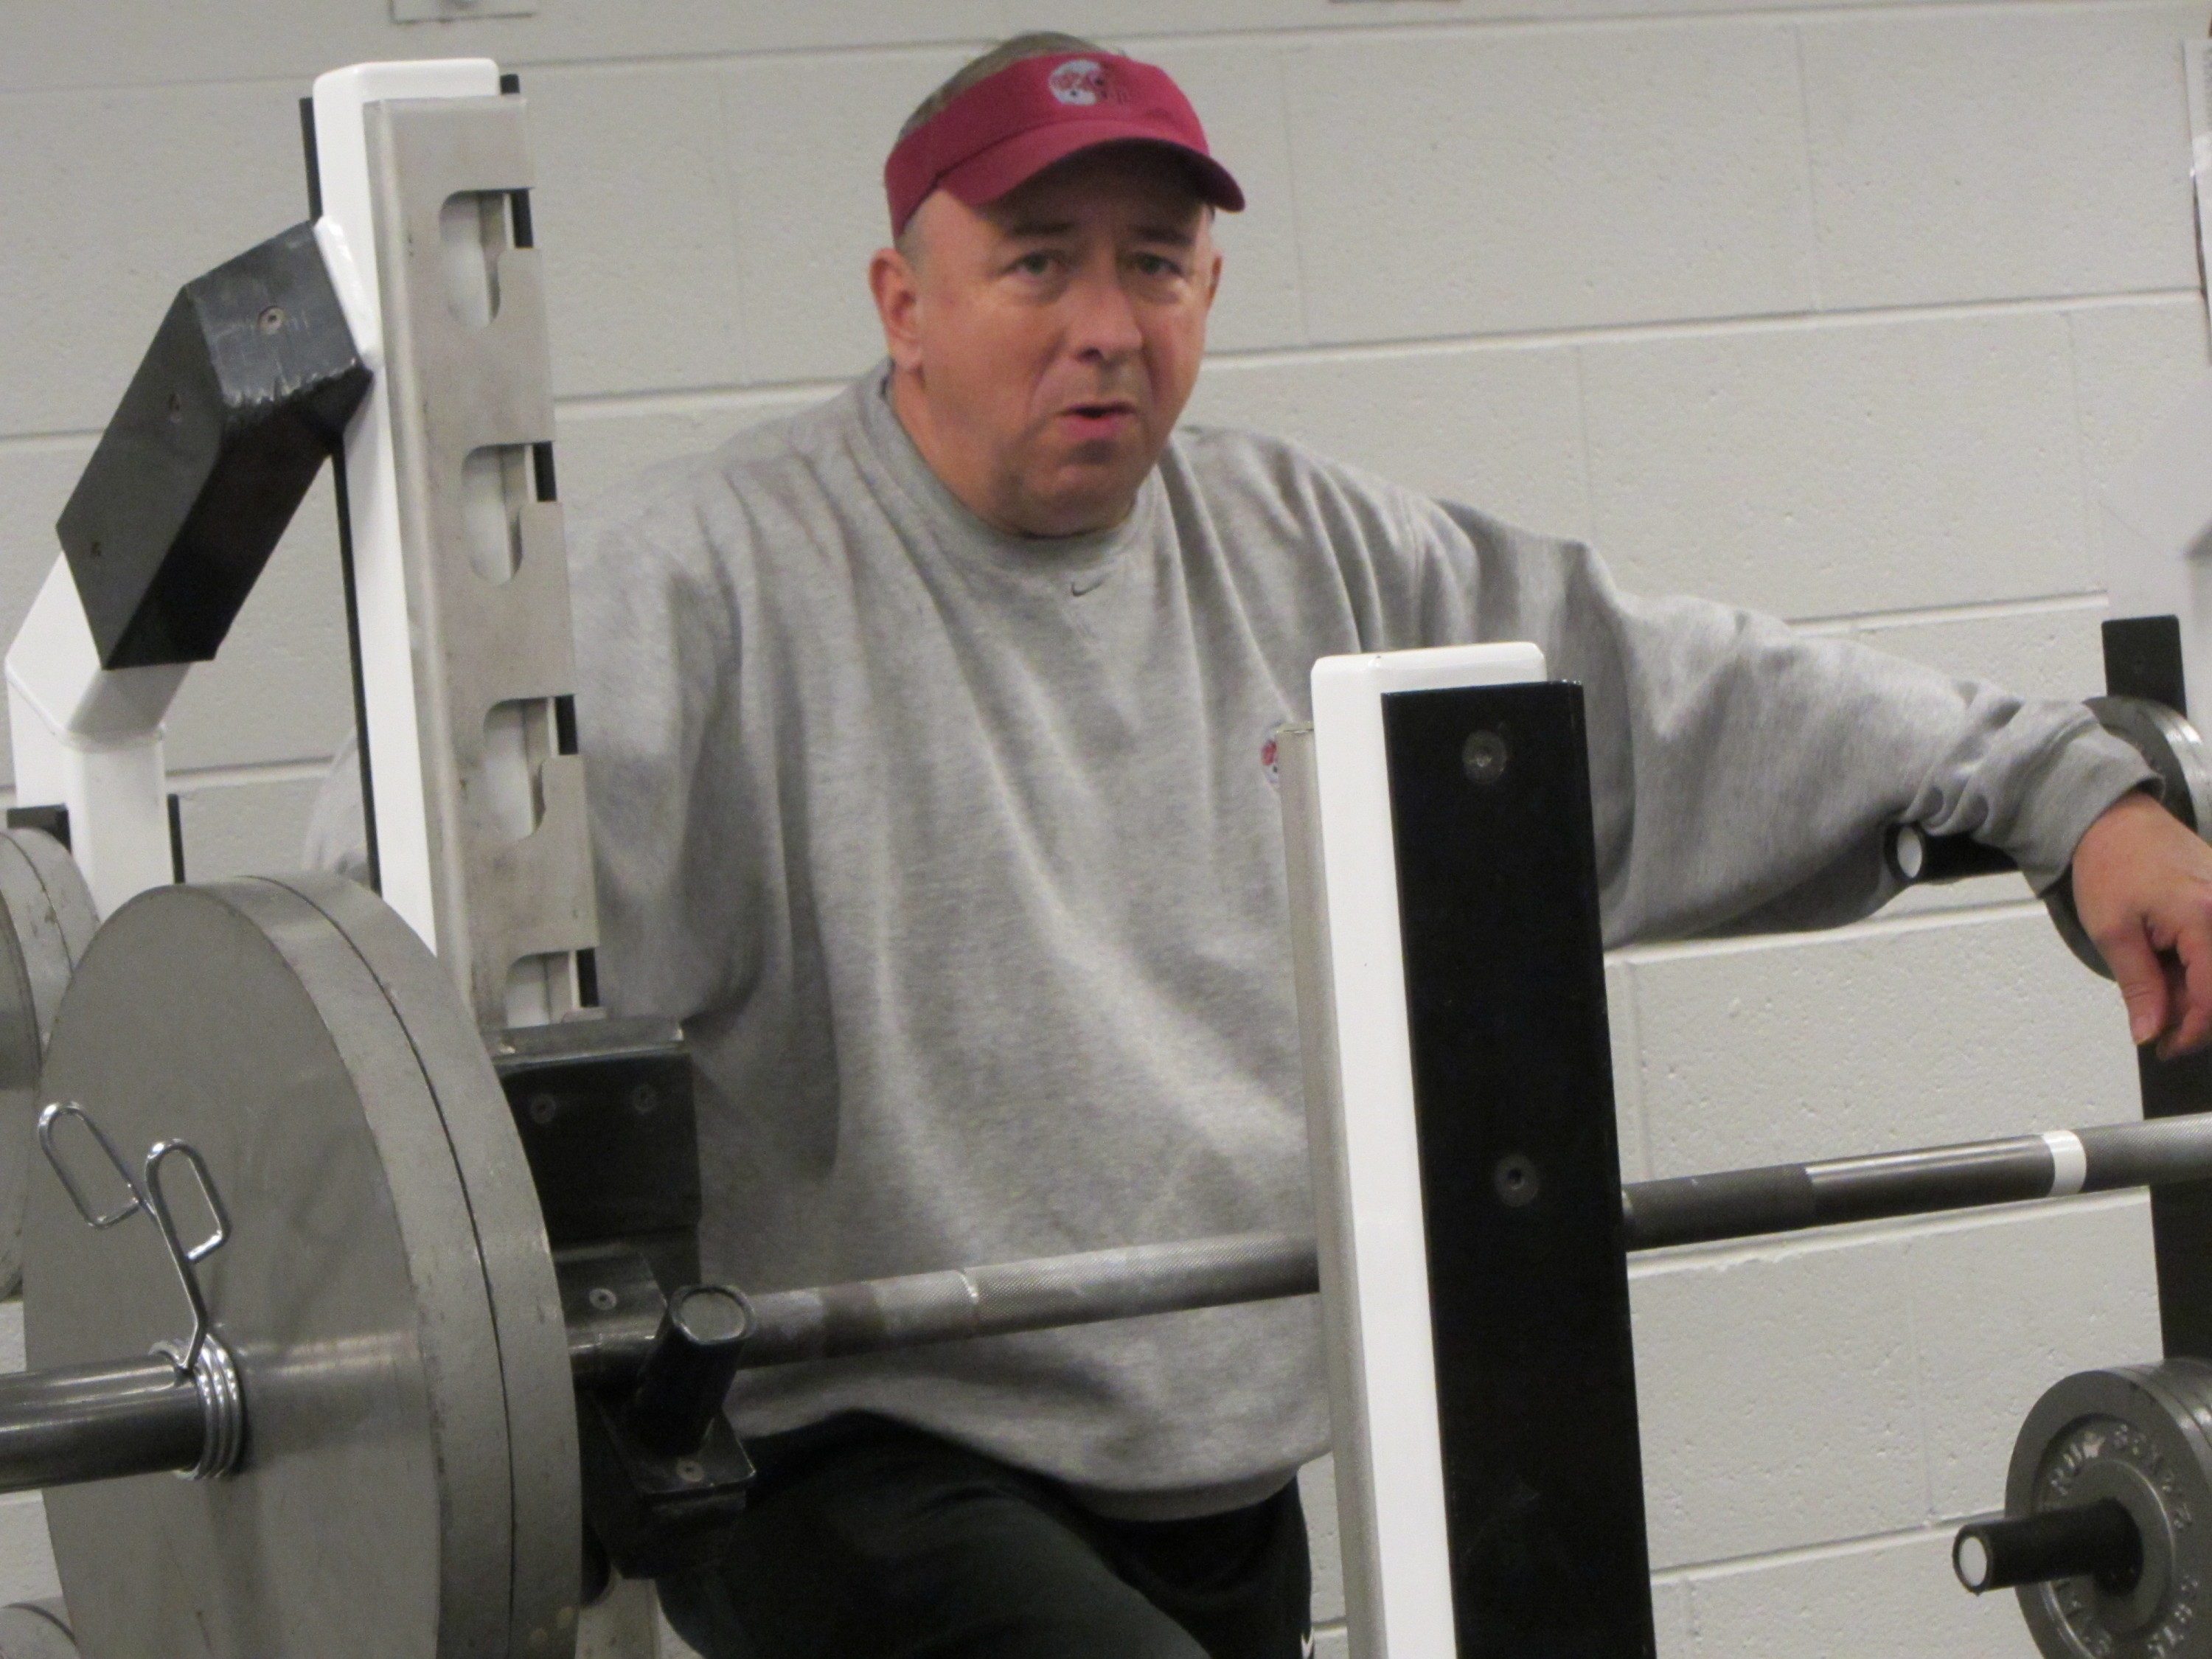 A photo I took of Rob Oviatt at the 2012 Montana Pro Day.